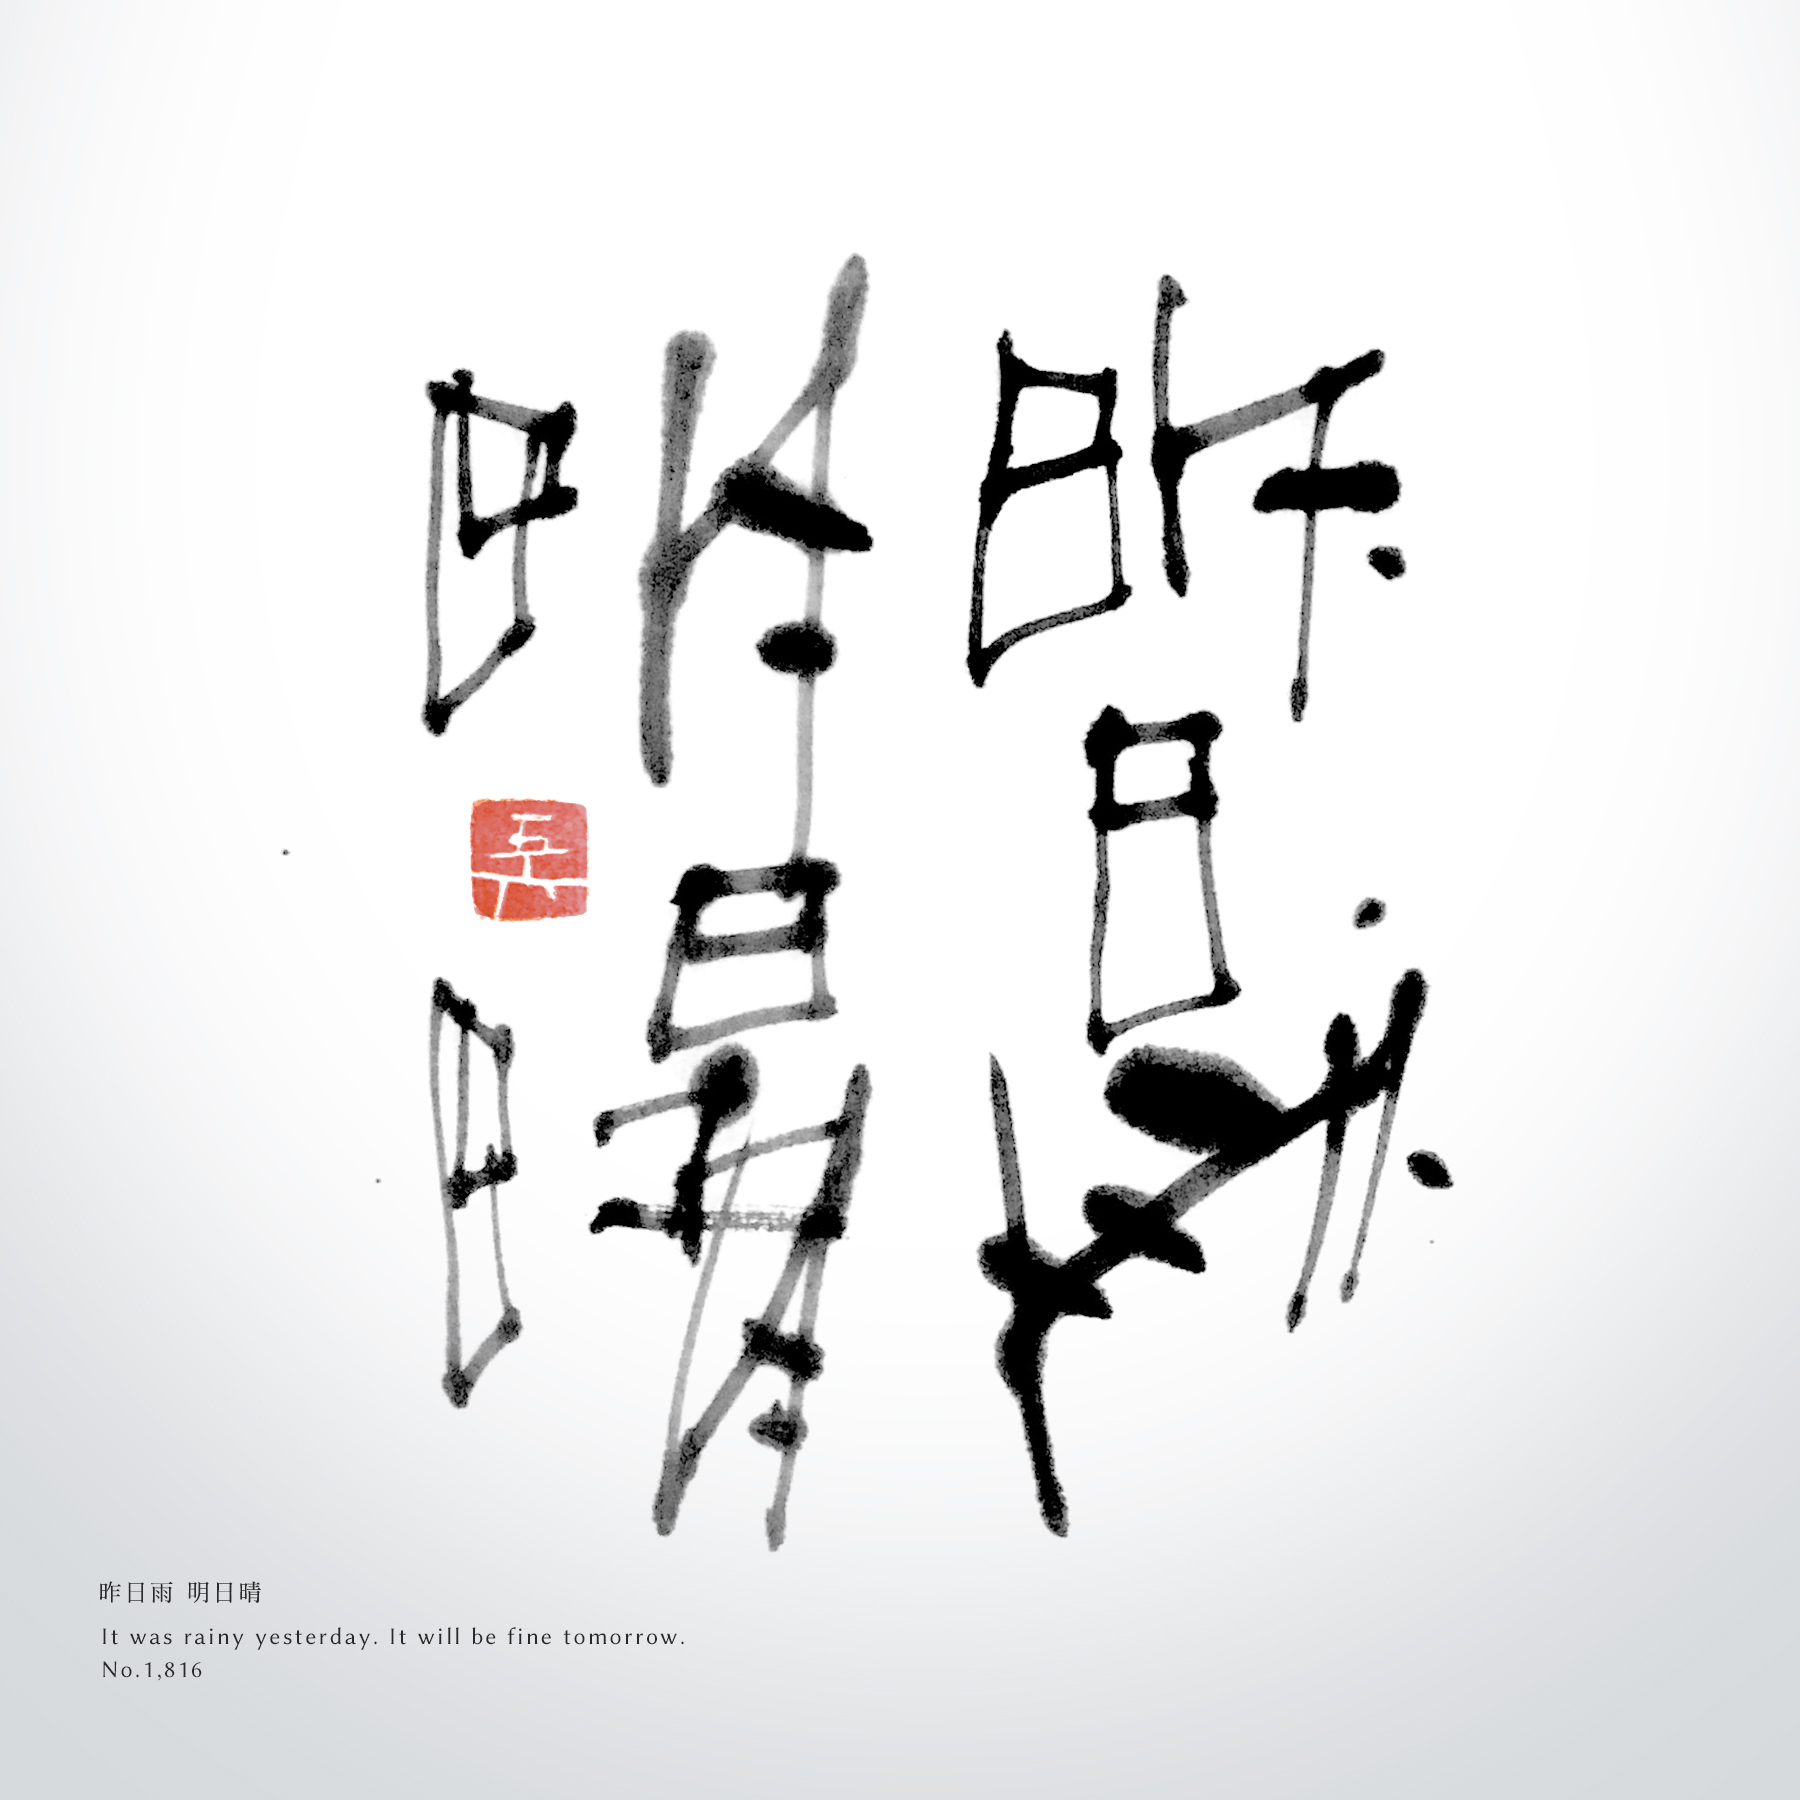 昨日雨 明日晴 | it will be fine tomorrow 書道作品 japaneseart japanese calligraphy 書家 田川悟郎 Goroh Tagawa